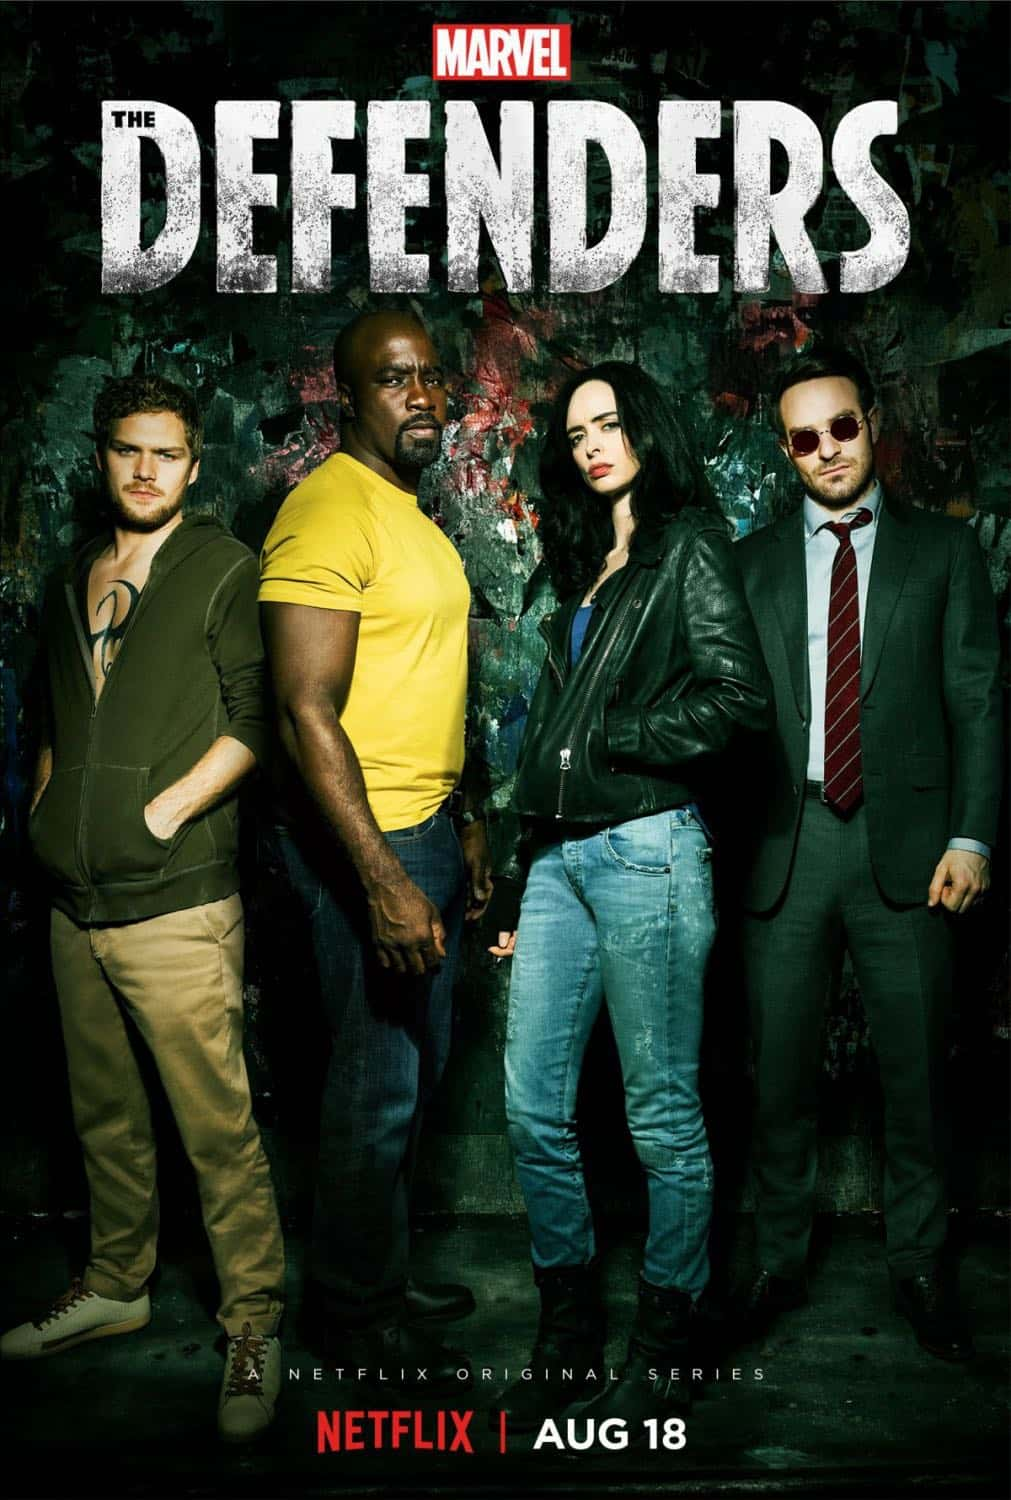 The-Defenders-Marvel-Poster